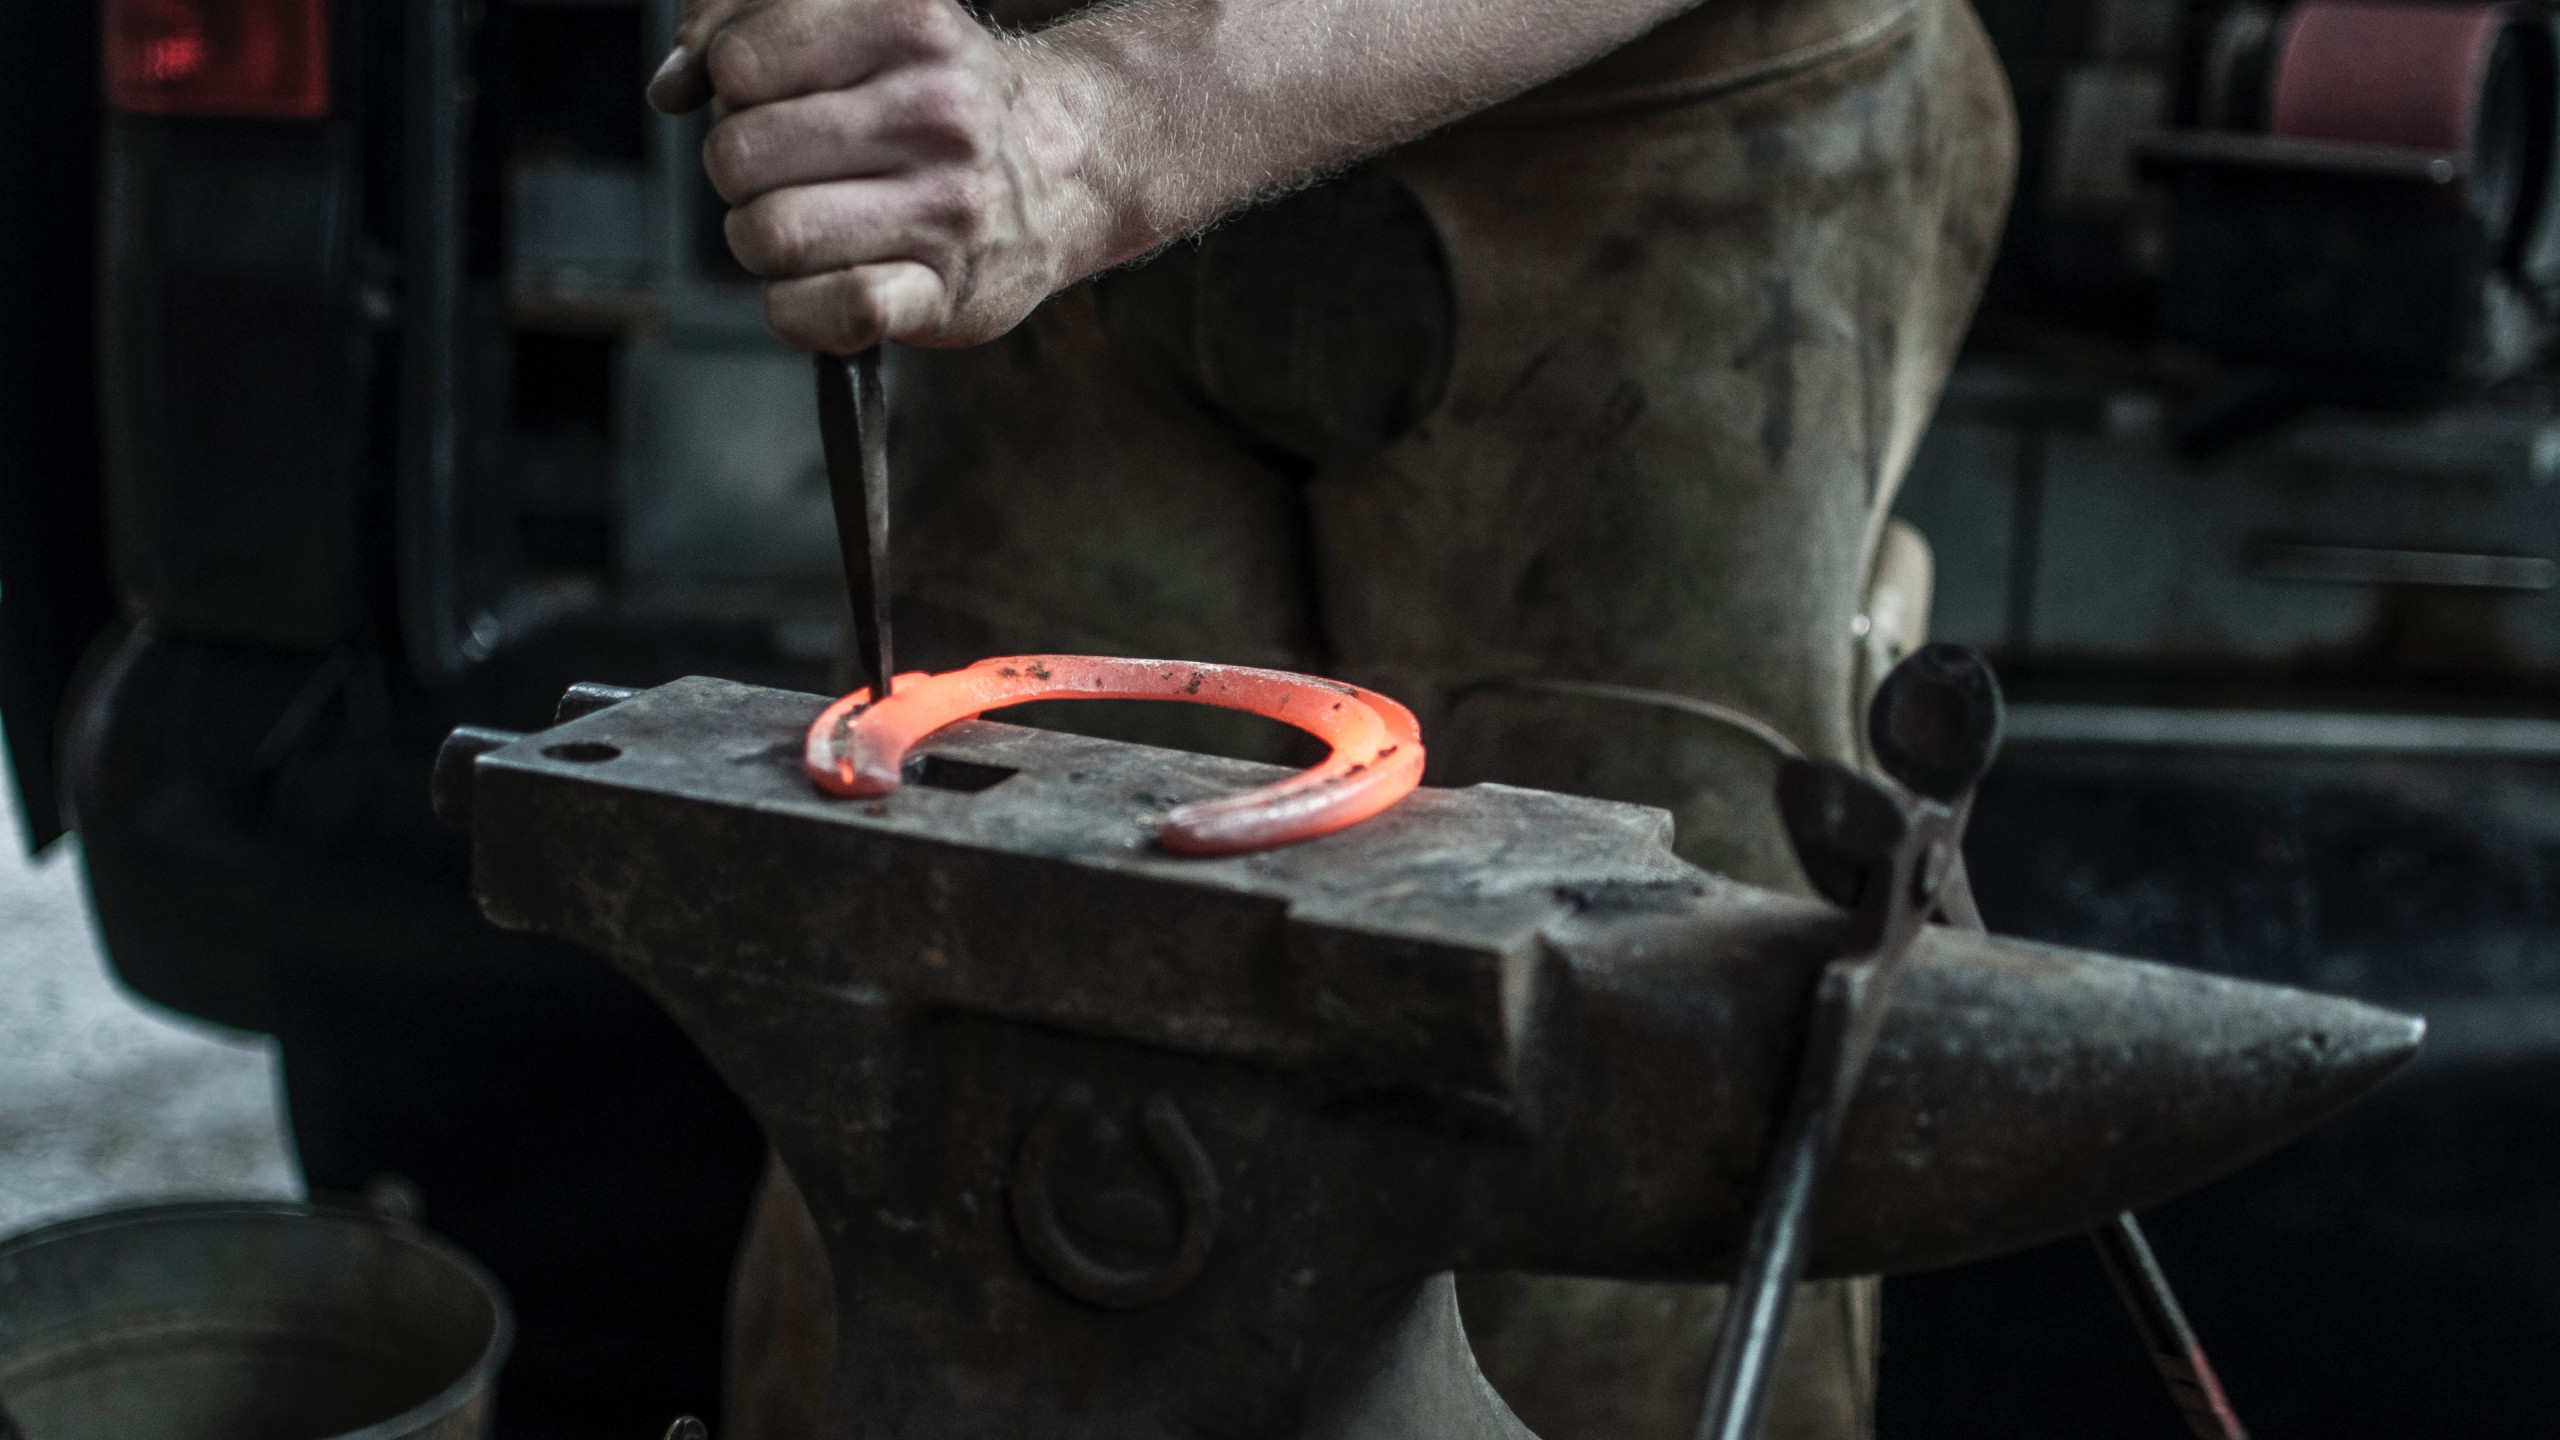 Blacksmith doing a Horseshoe | 2560x1440 wallpaper